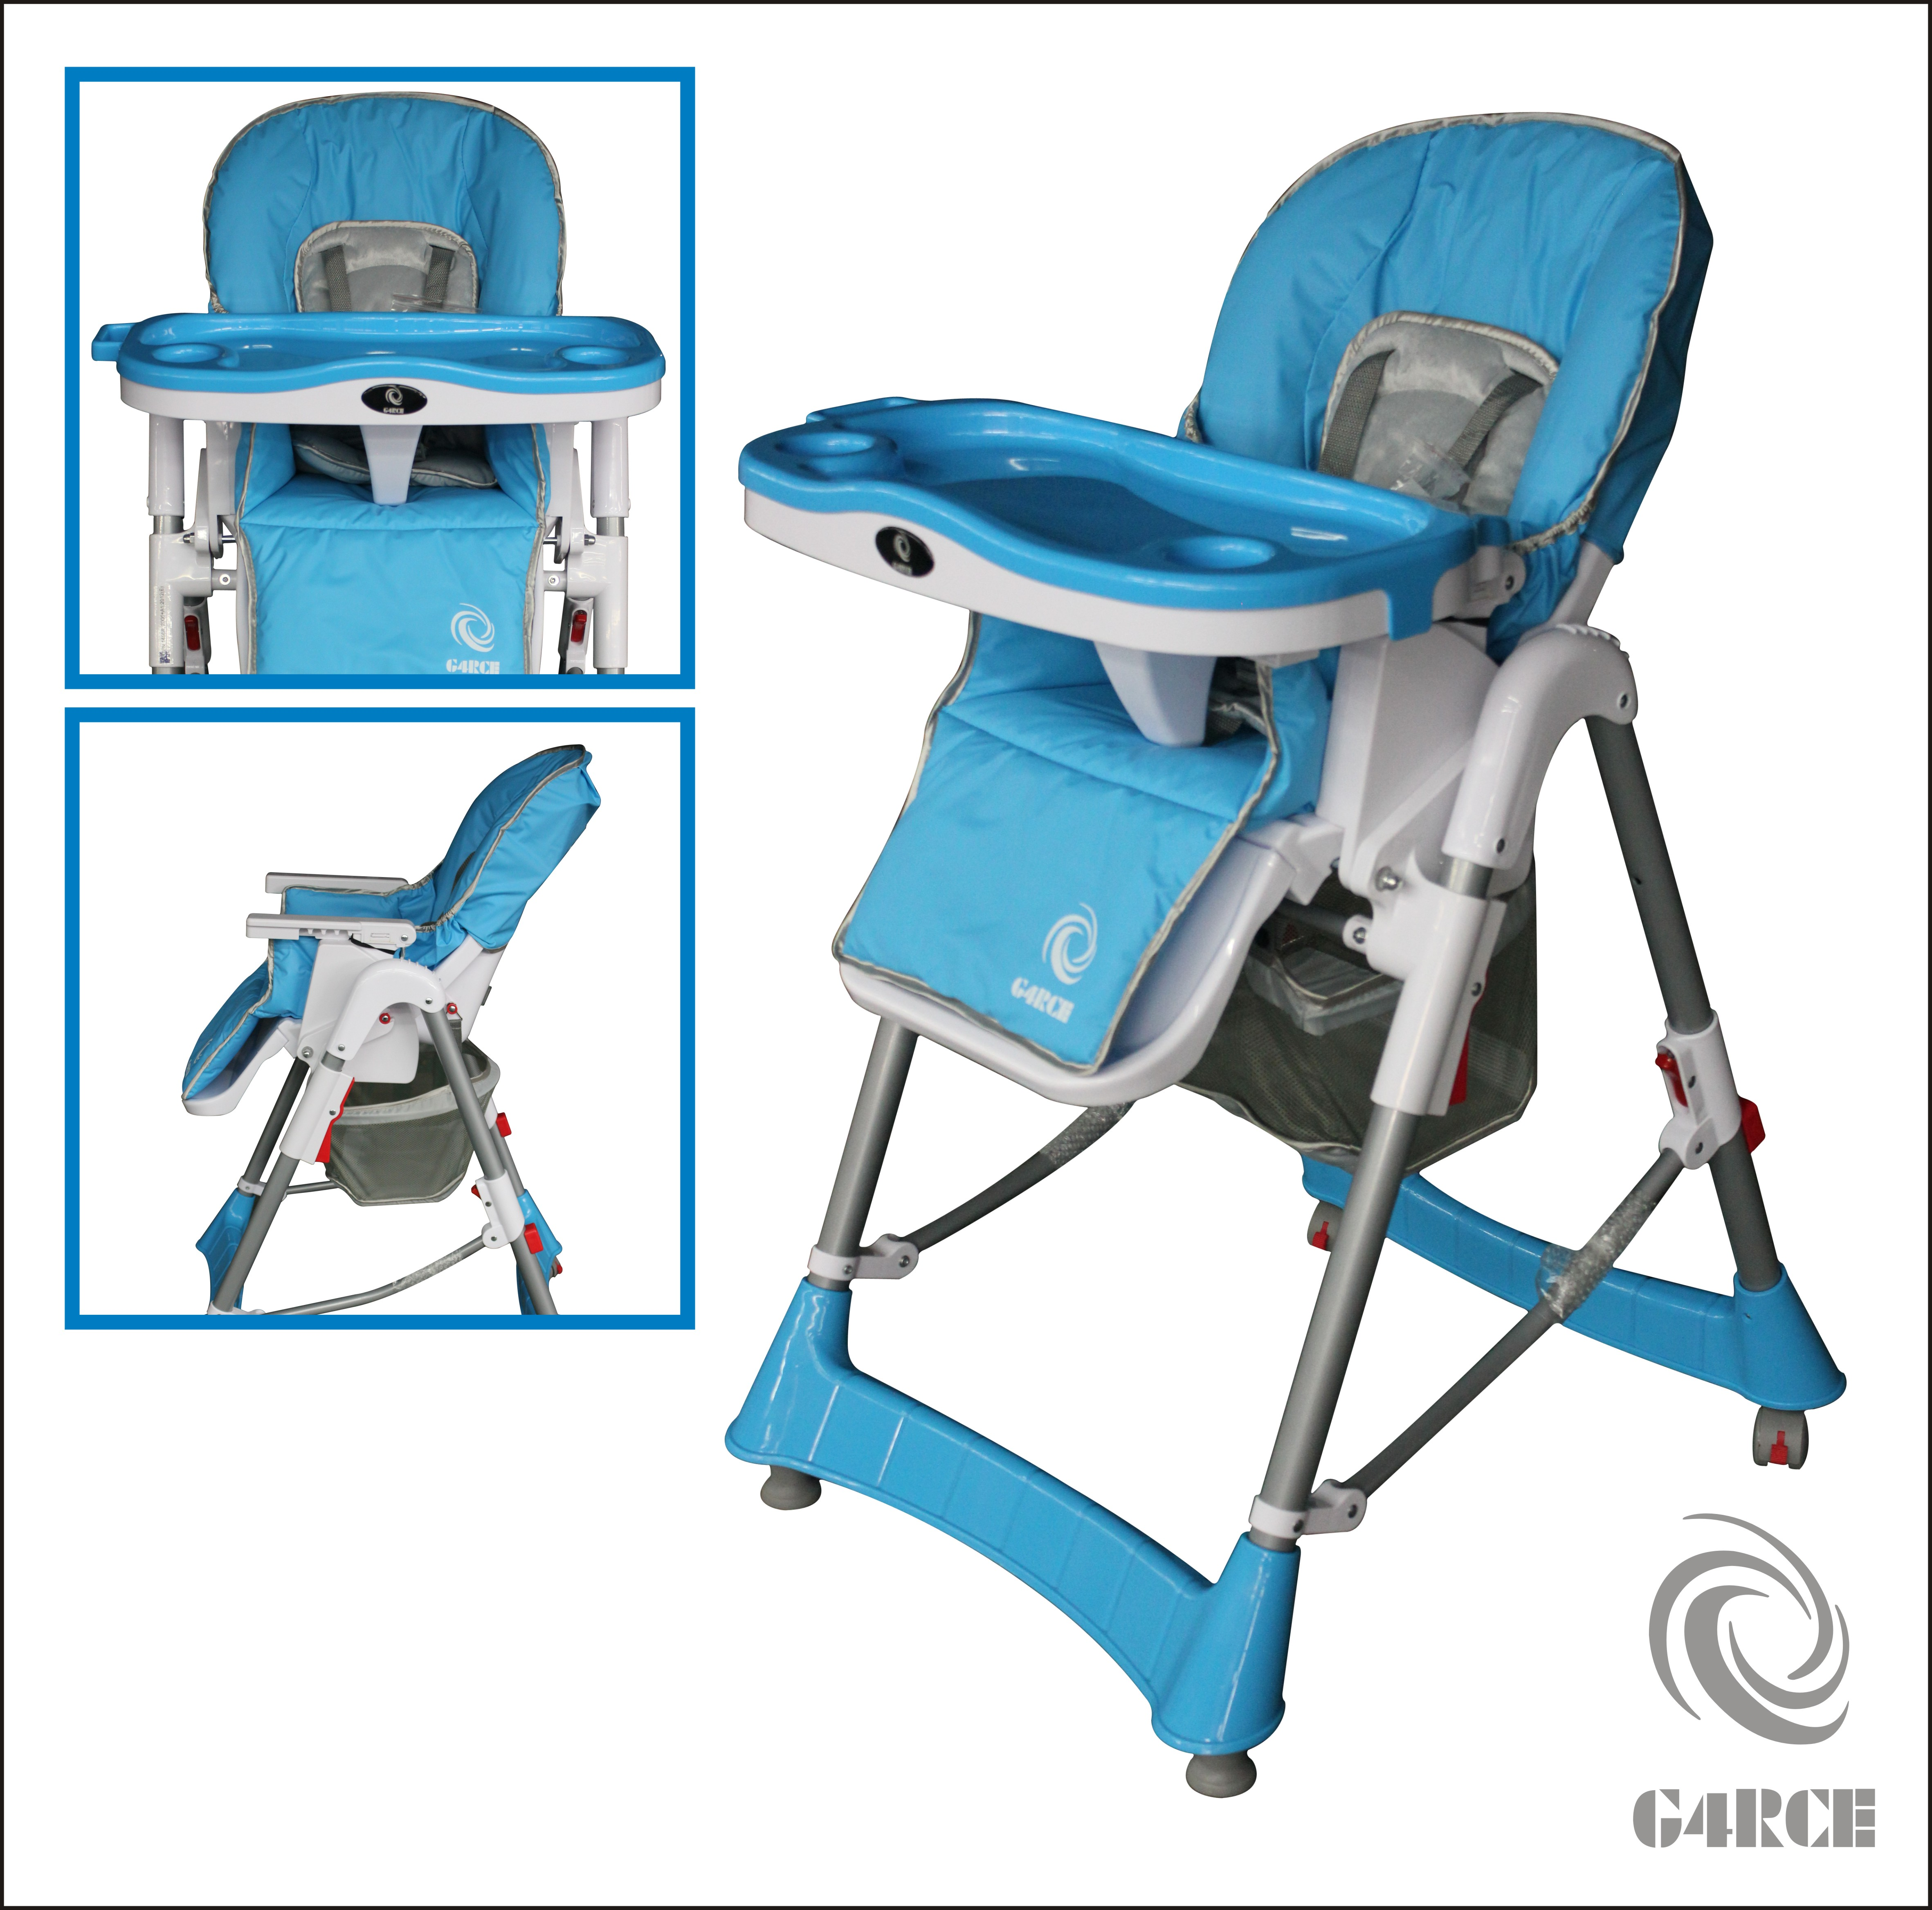 G4RCE Foldable 3 IN 1 Baby Toddler Infant High chair Feeding